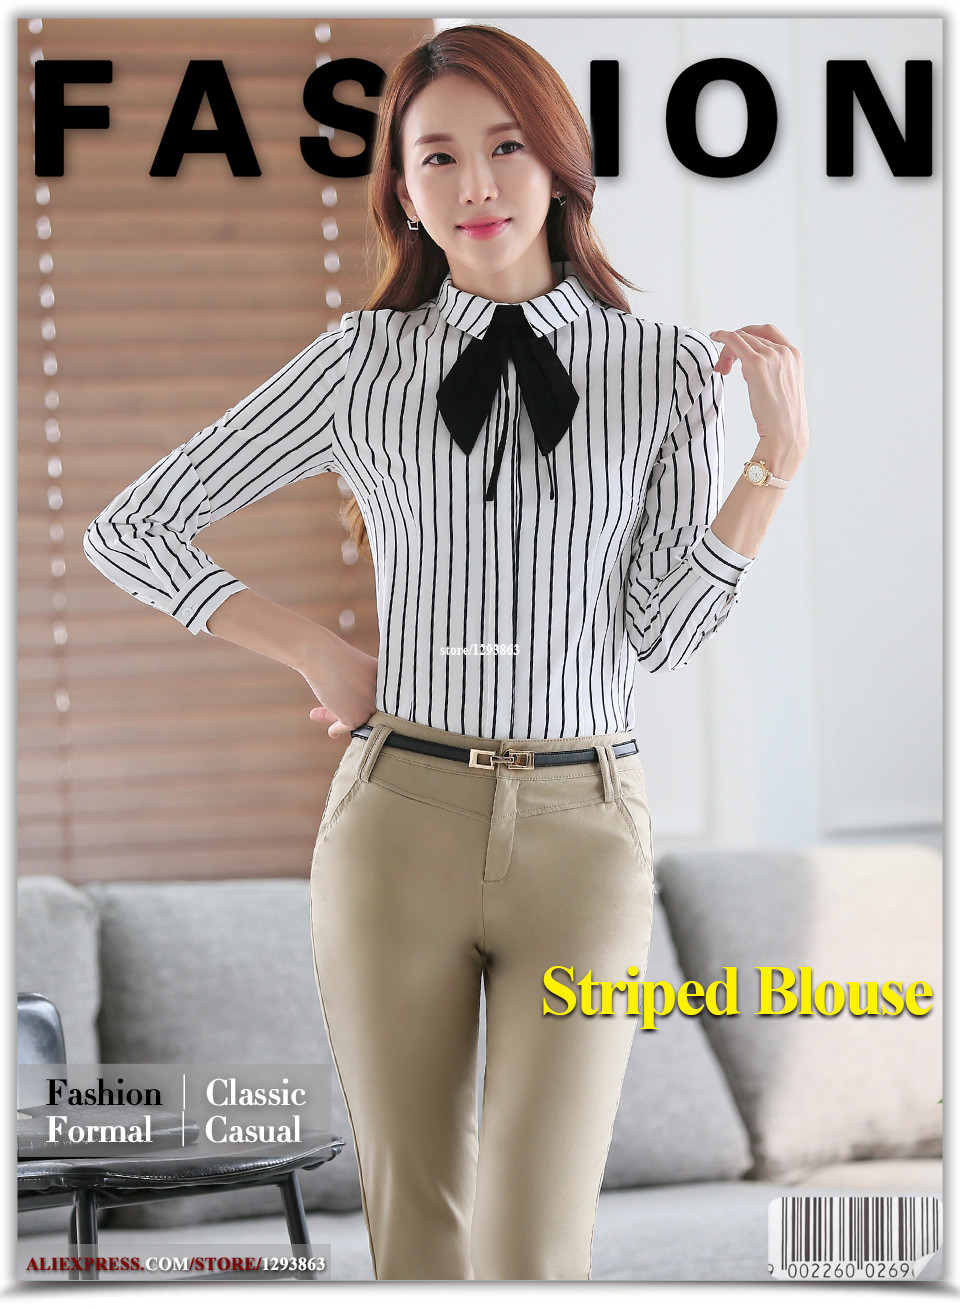 Lenshin Women Tie Blouses Office Lady Female Black And White Striped Details Menamp039s V Neck Tee Putih 1656syaliexpress 01 02 03 04 05 06 07